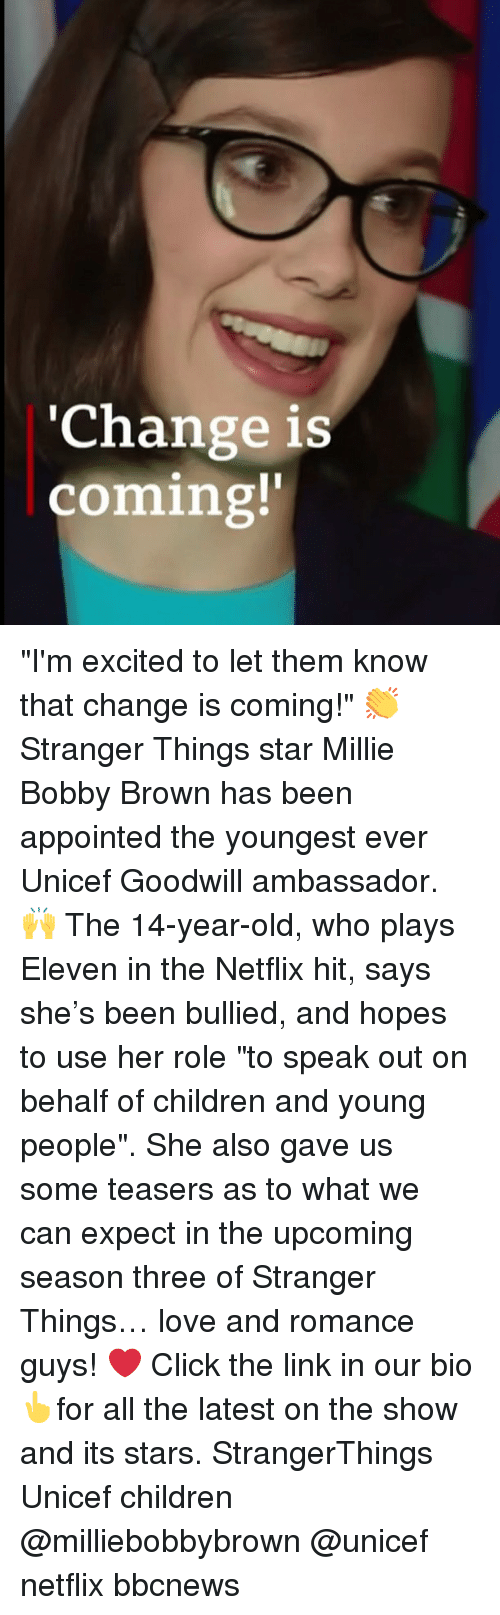 "Children, Click, and Love: 'Change is  coming!' ""I'm excited to let them know that change is coming!"" 👏 Stranger Things star Millie Bobby Brown has been appointed the youngest ever Unicef Goodwill ambassador. 🙌 The 14-year-old, who plays Eleven in the Netflix hit, says she's been bullied, and hopes to use her role ""to speak out on behalf of children and young people"". She also gave us some teasers as to what we can expect in the upcoming season three of Stranger Things… love and romance guys! ❤️ Click the link in our bio👆for all the latest on the show and its stars. StrangerThings Unicef children @milliebobbybrown @unicef netflix bbcnews"